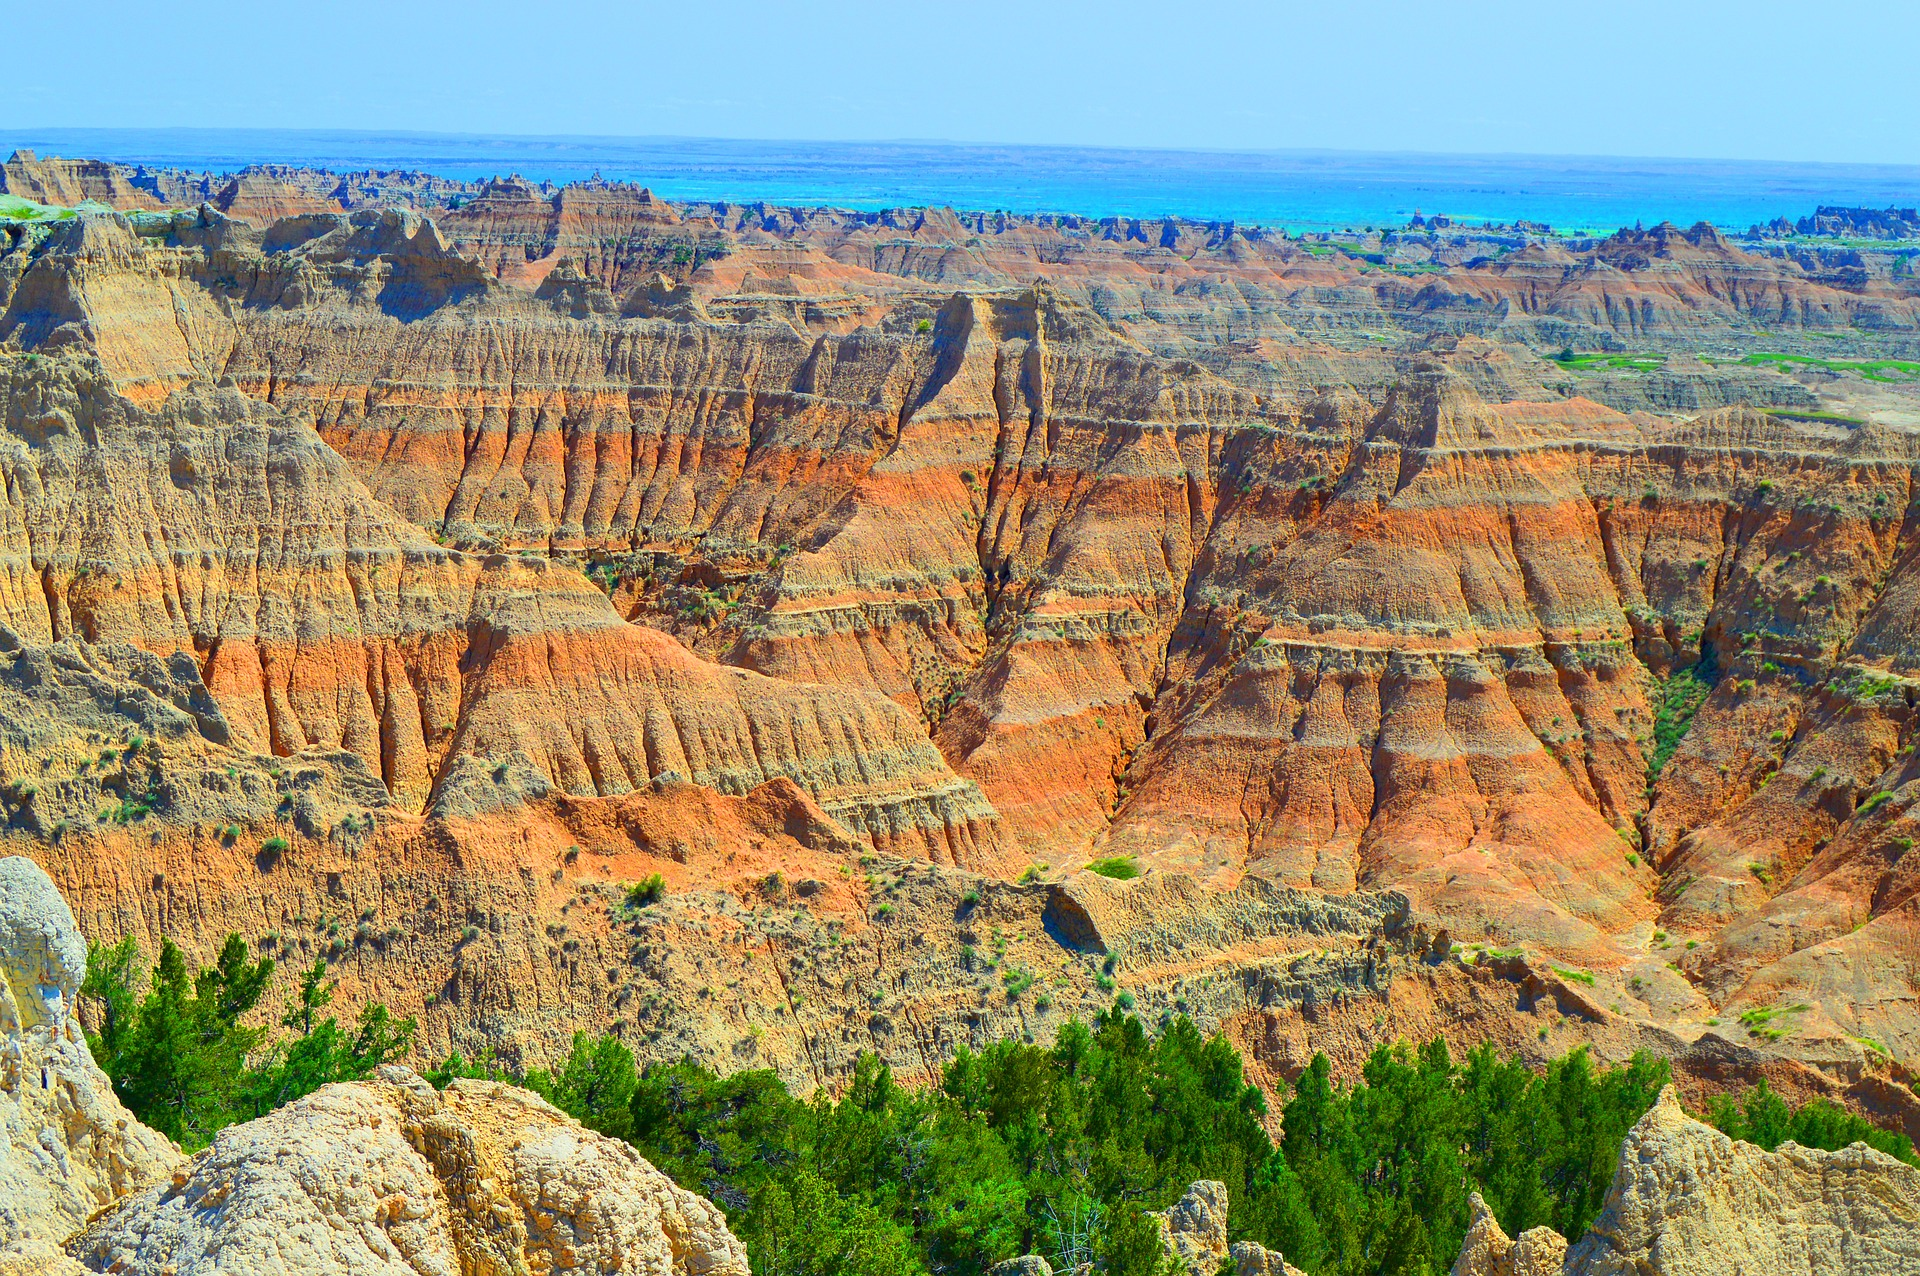 When visiting Sturgis, SD, don't miss a scenic drive to the Badlands National Par